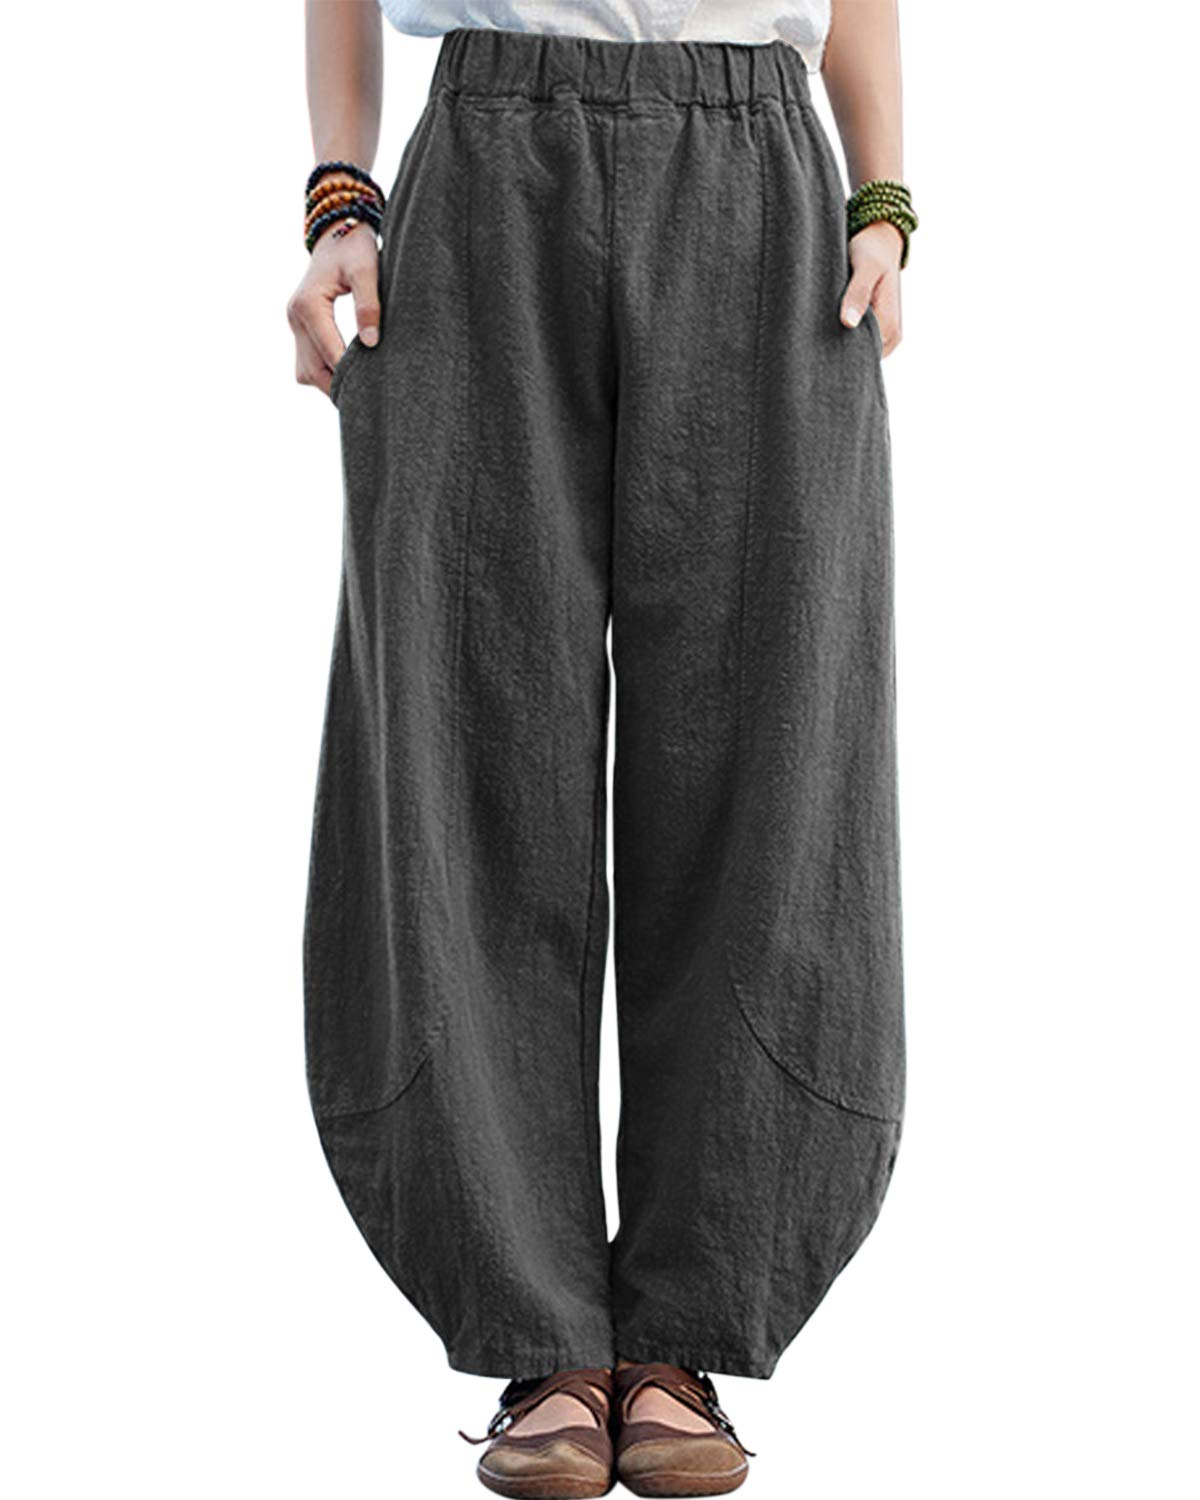 IXIMO Womens Casual Cotton Linen Baggy Pants with Elastic Waist Relax Fit Lantern Trousers